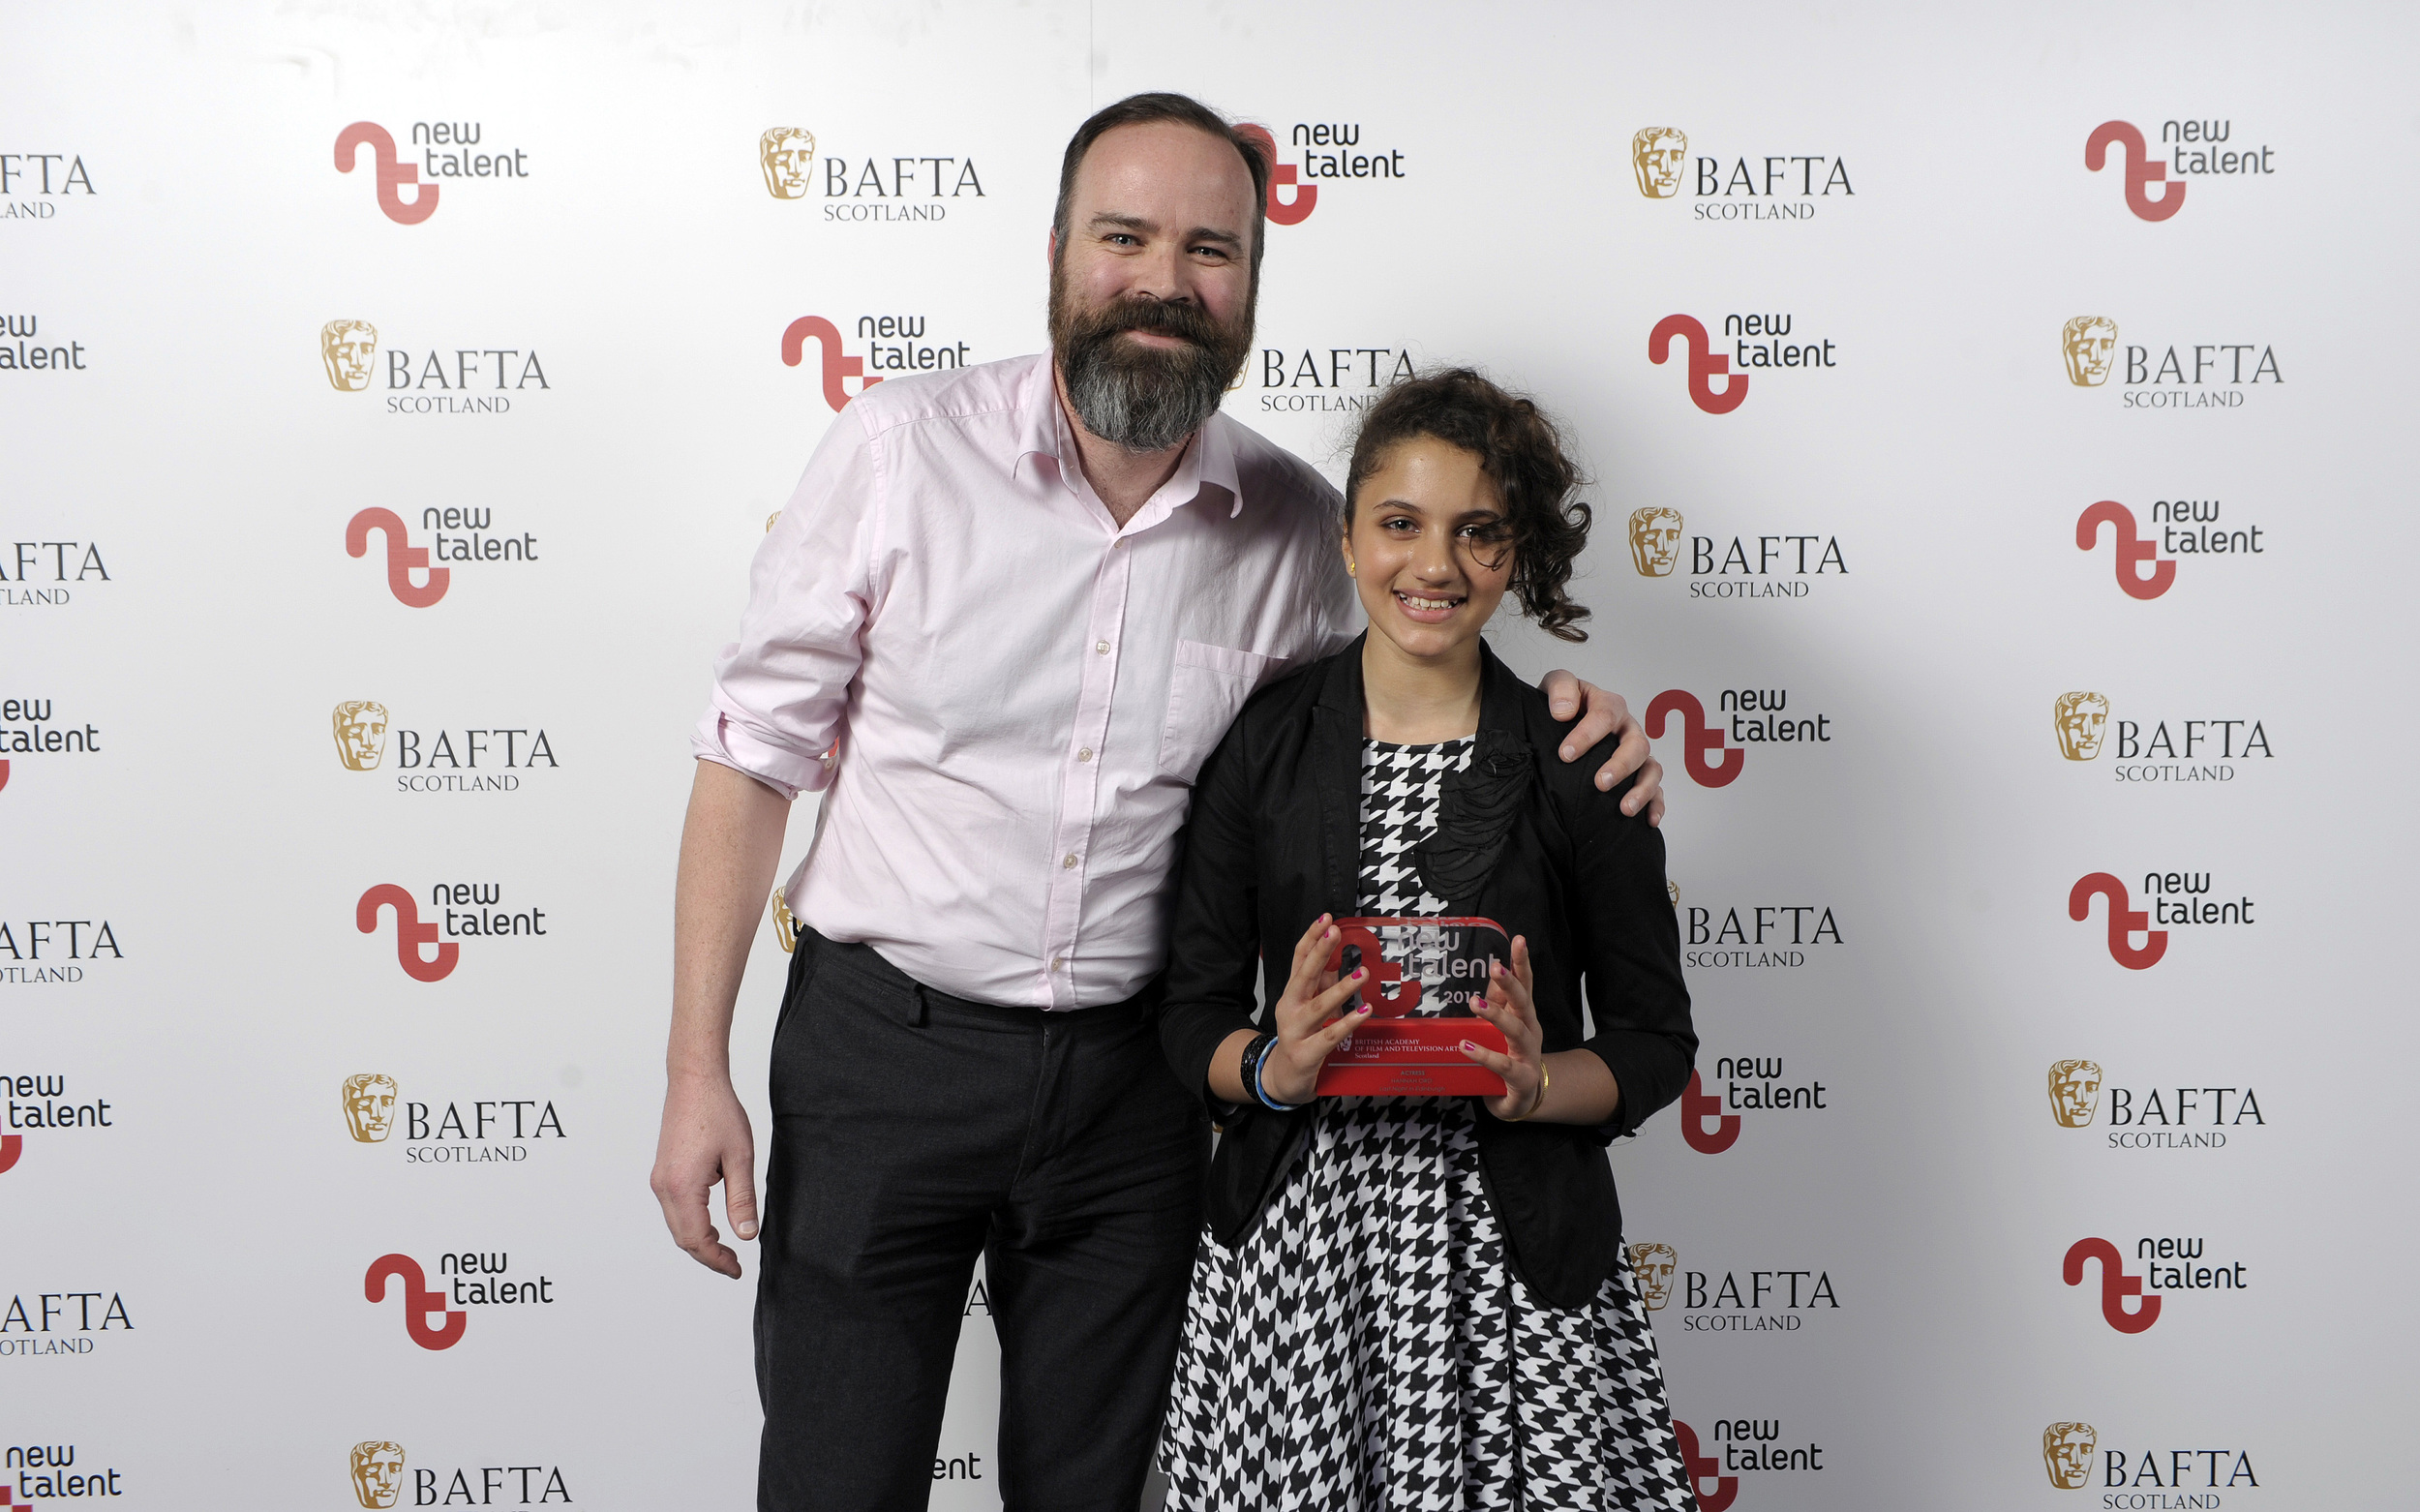 Hannah Ord Best Acress BAFTA New Talent Award 2015